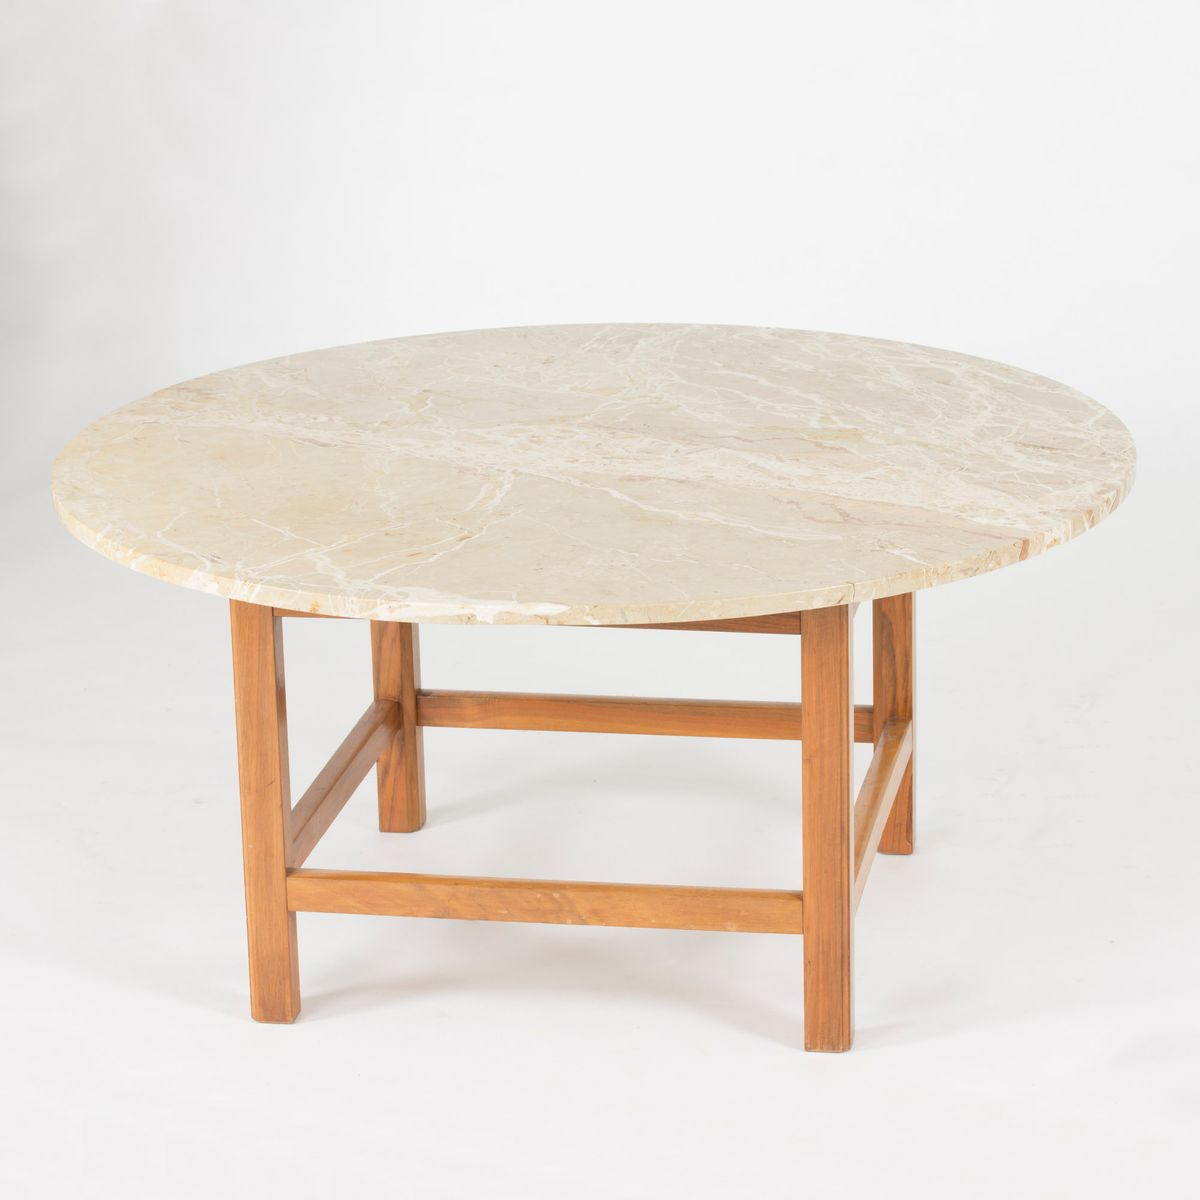 Mahogany and marble coffee table by josef frank 1950s for for Mahogany coffee table